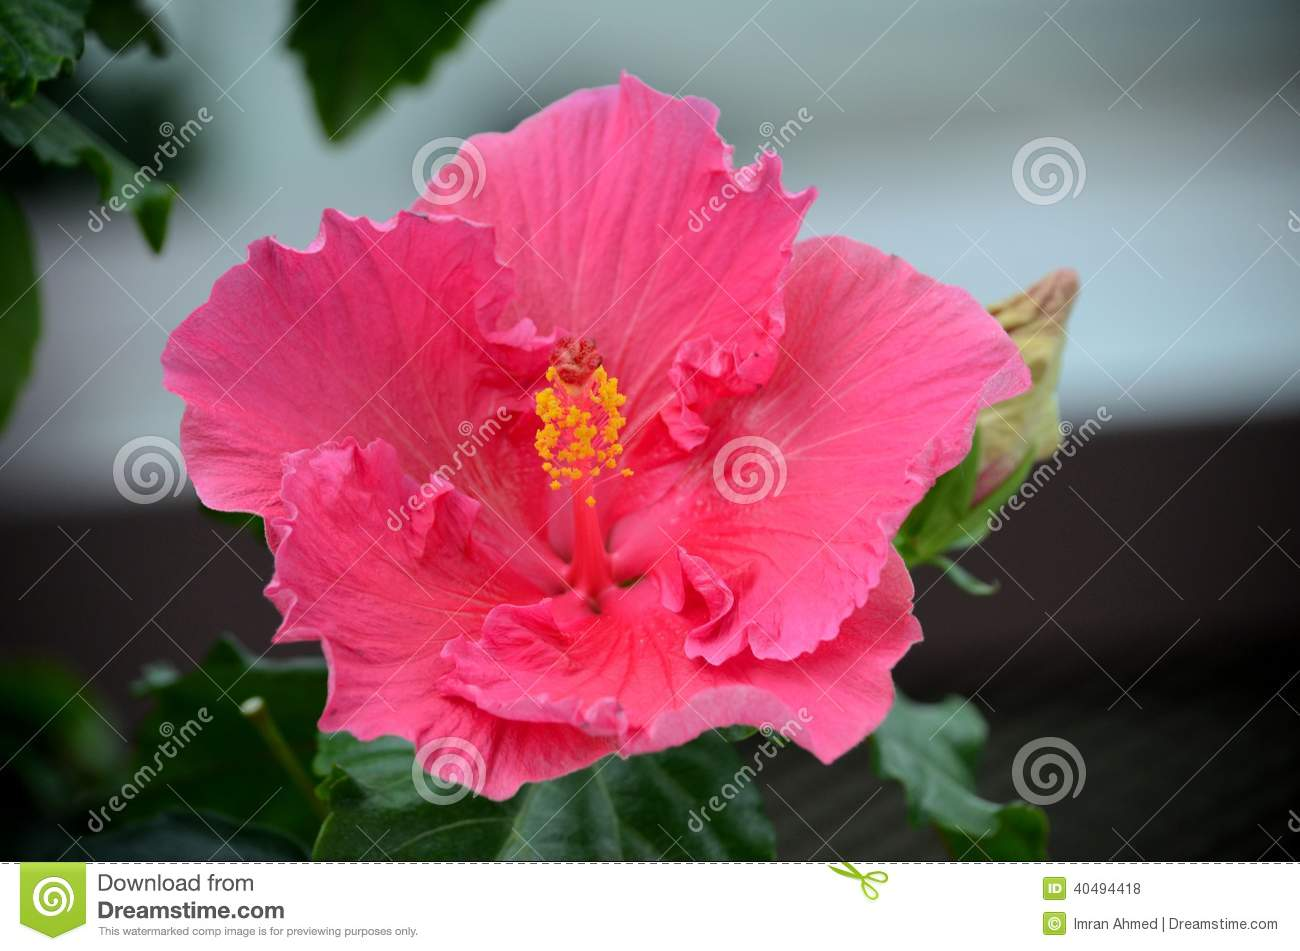 Dark Pink Flower Close Up With Stamen And Pistils Stock Photo